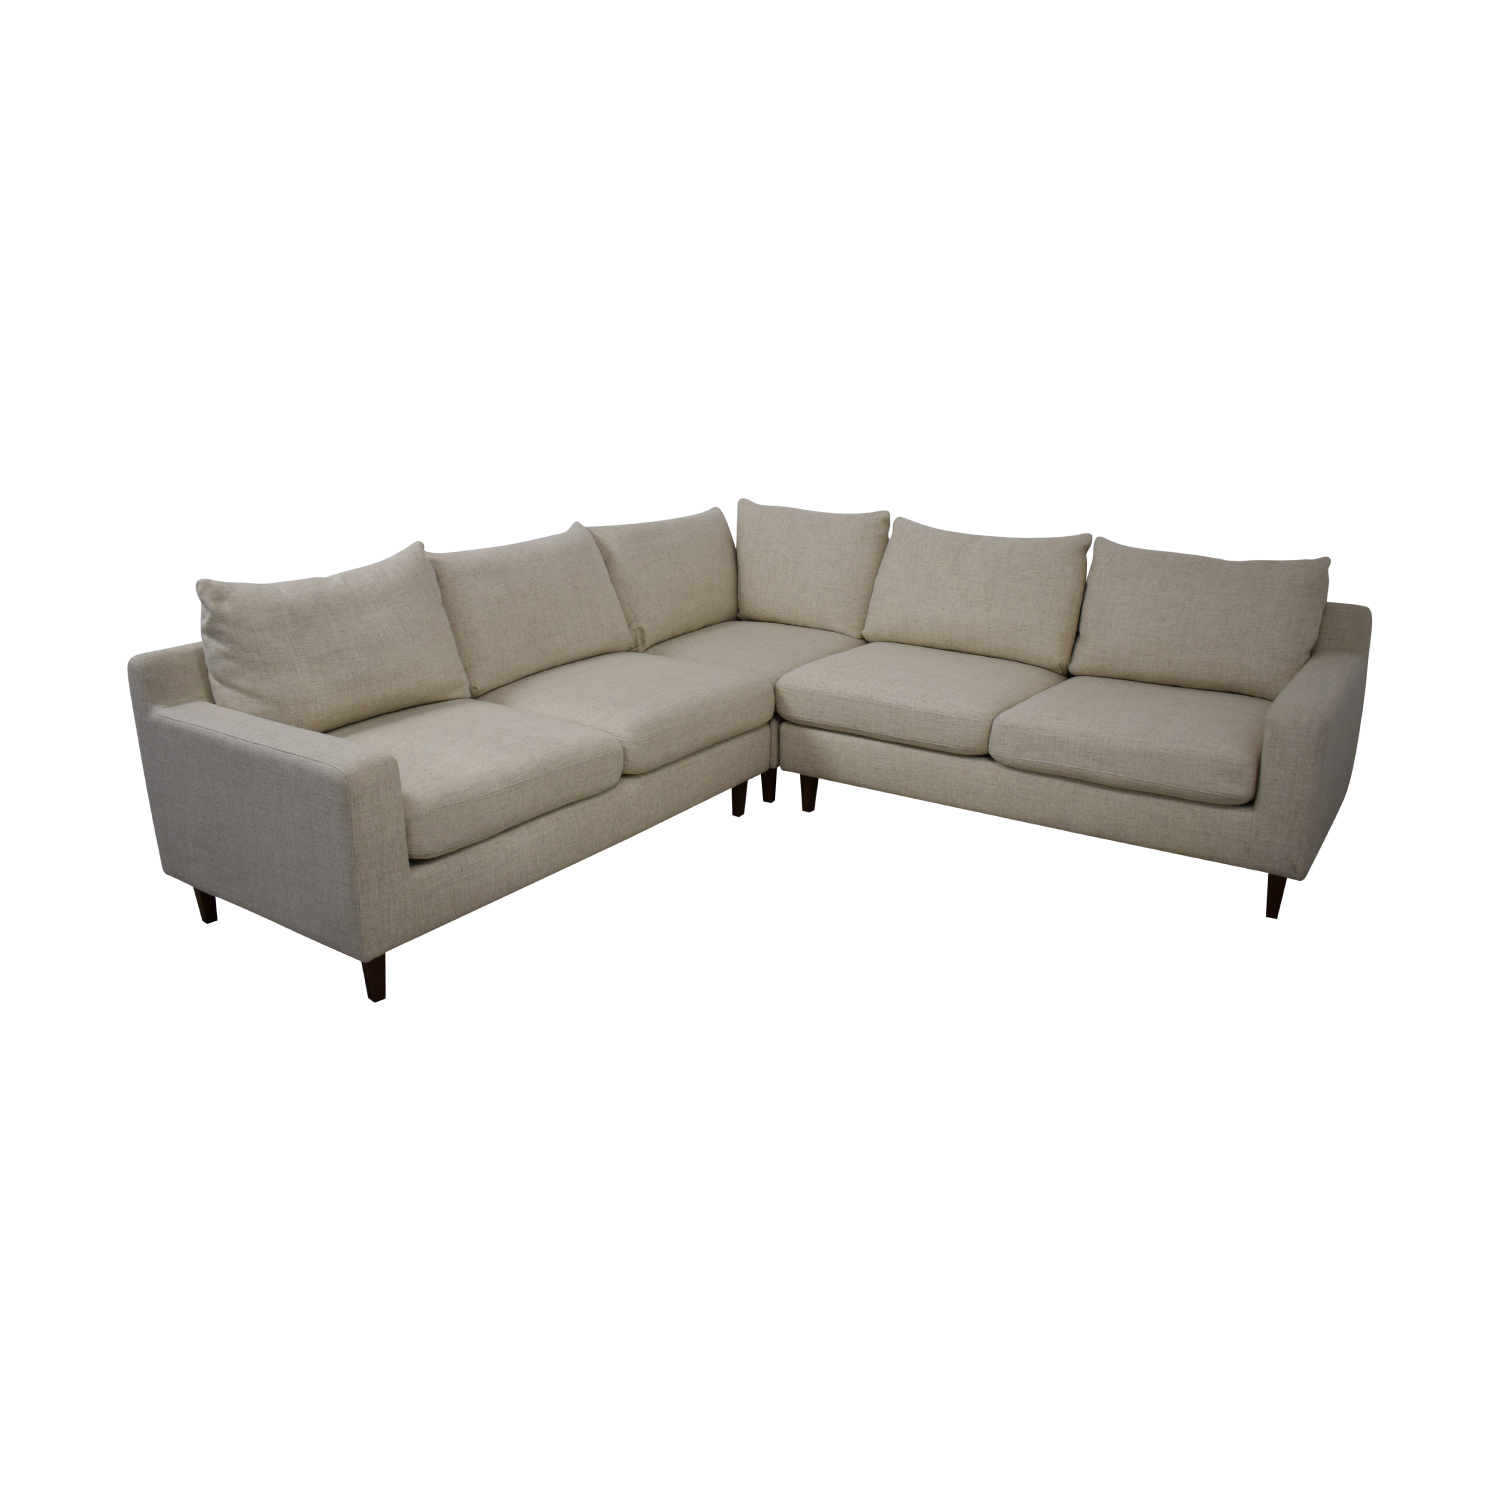 buy Sloan L-Shaped Sectional Sofa Interior Define